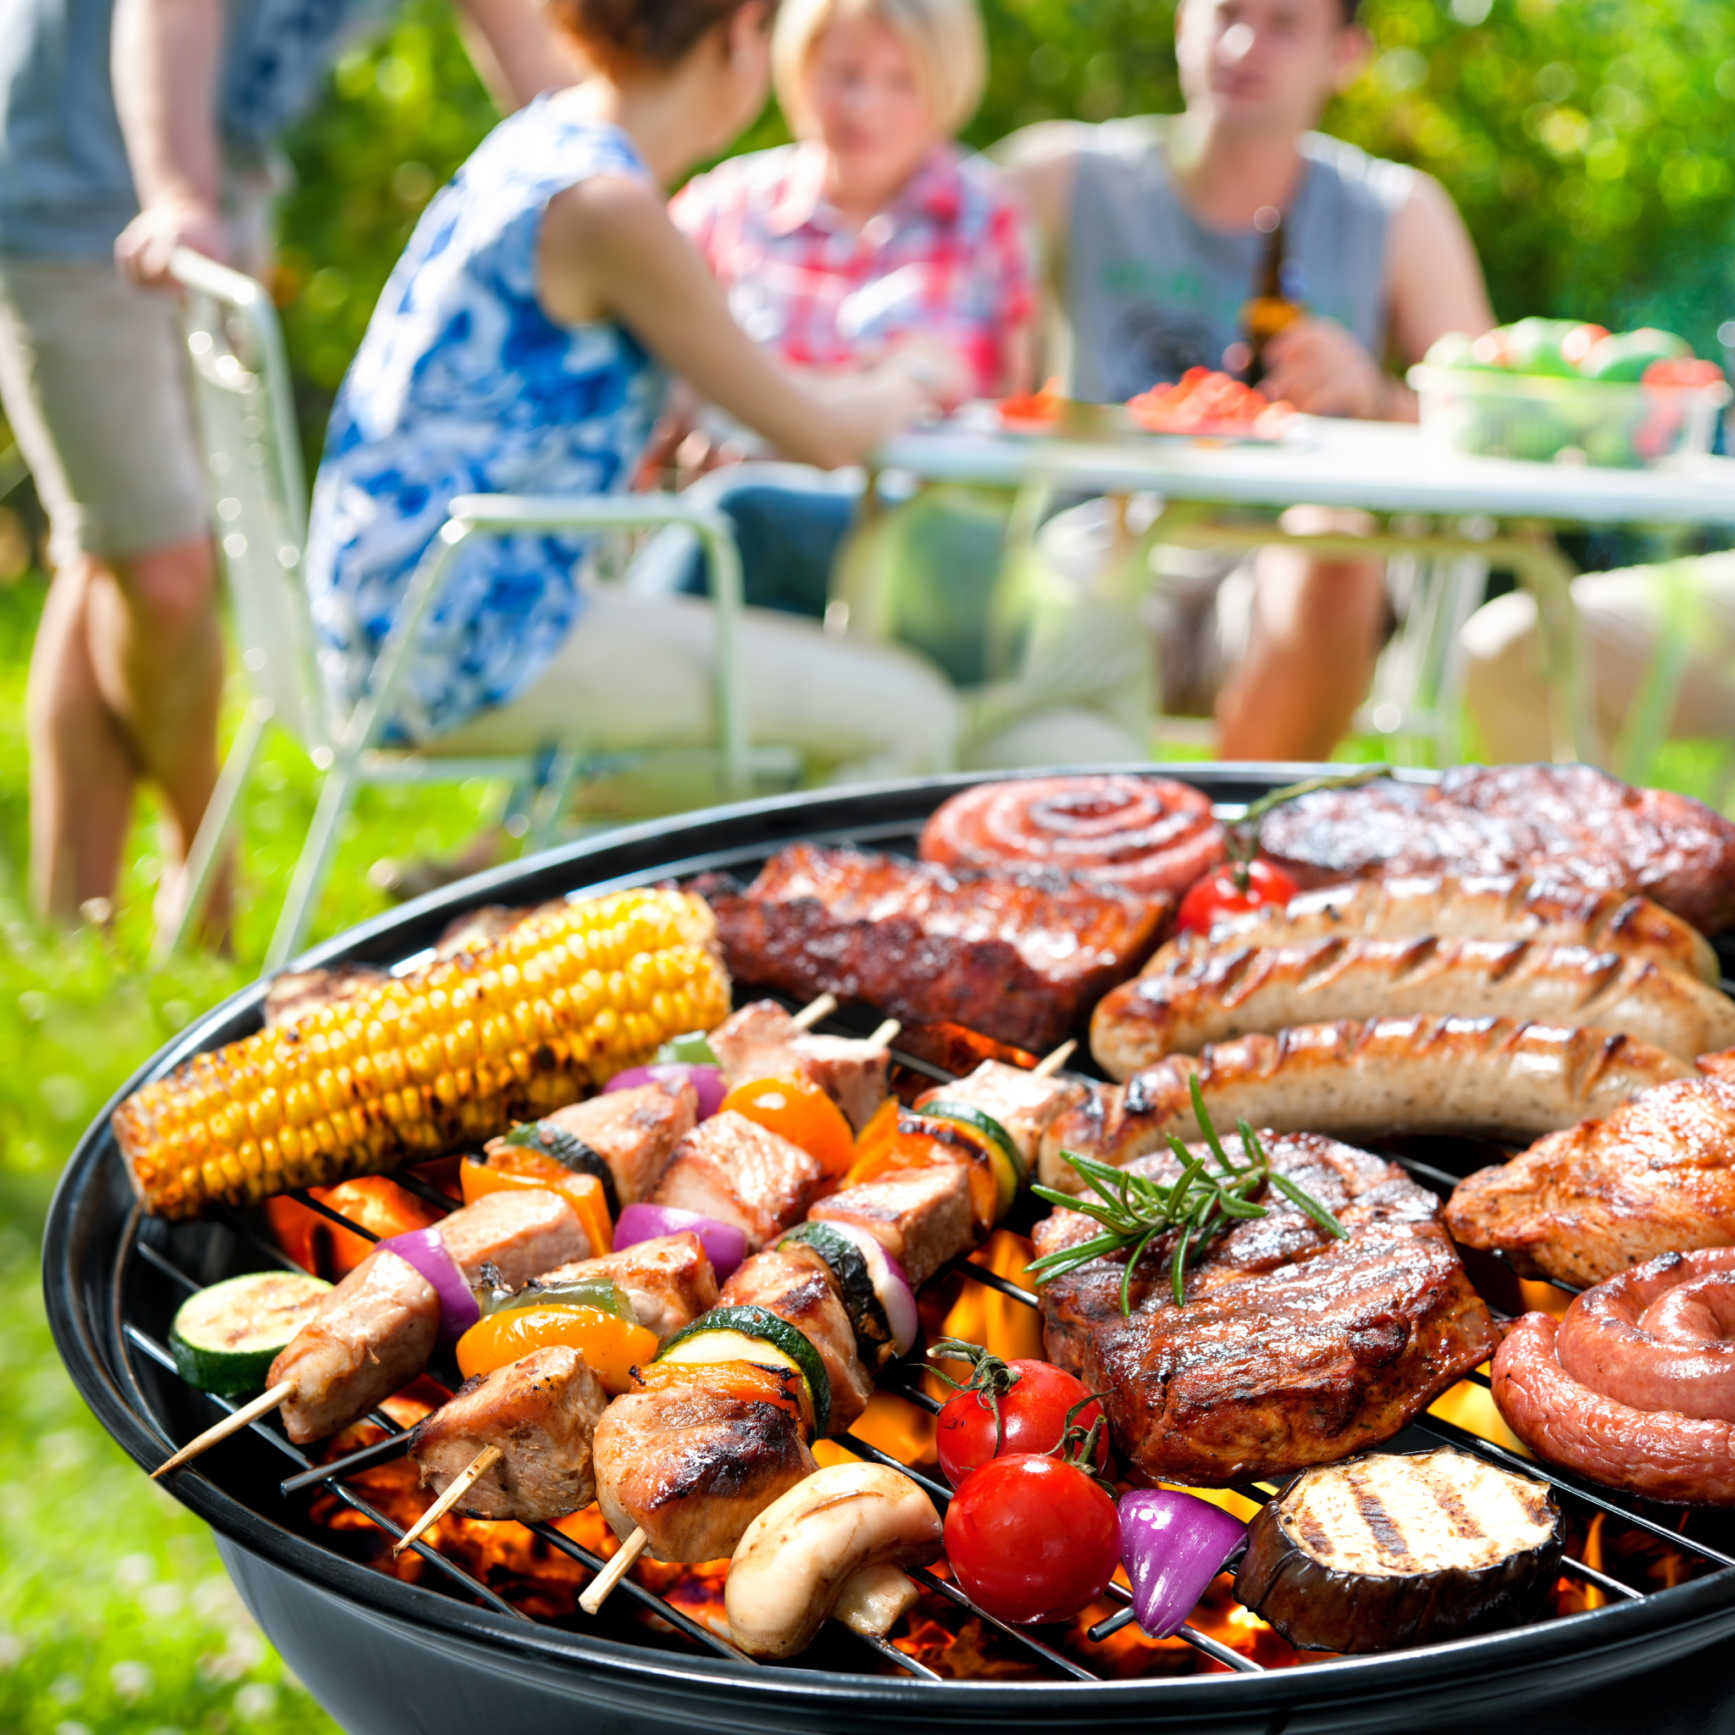 A barbecue doesn't have to bust your calorie count